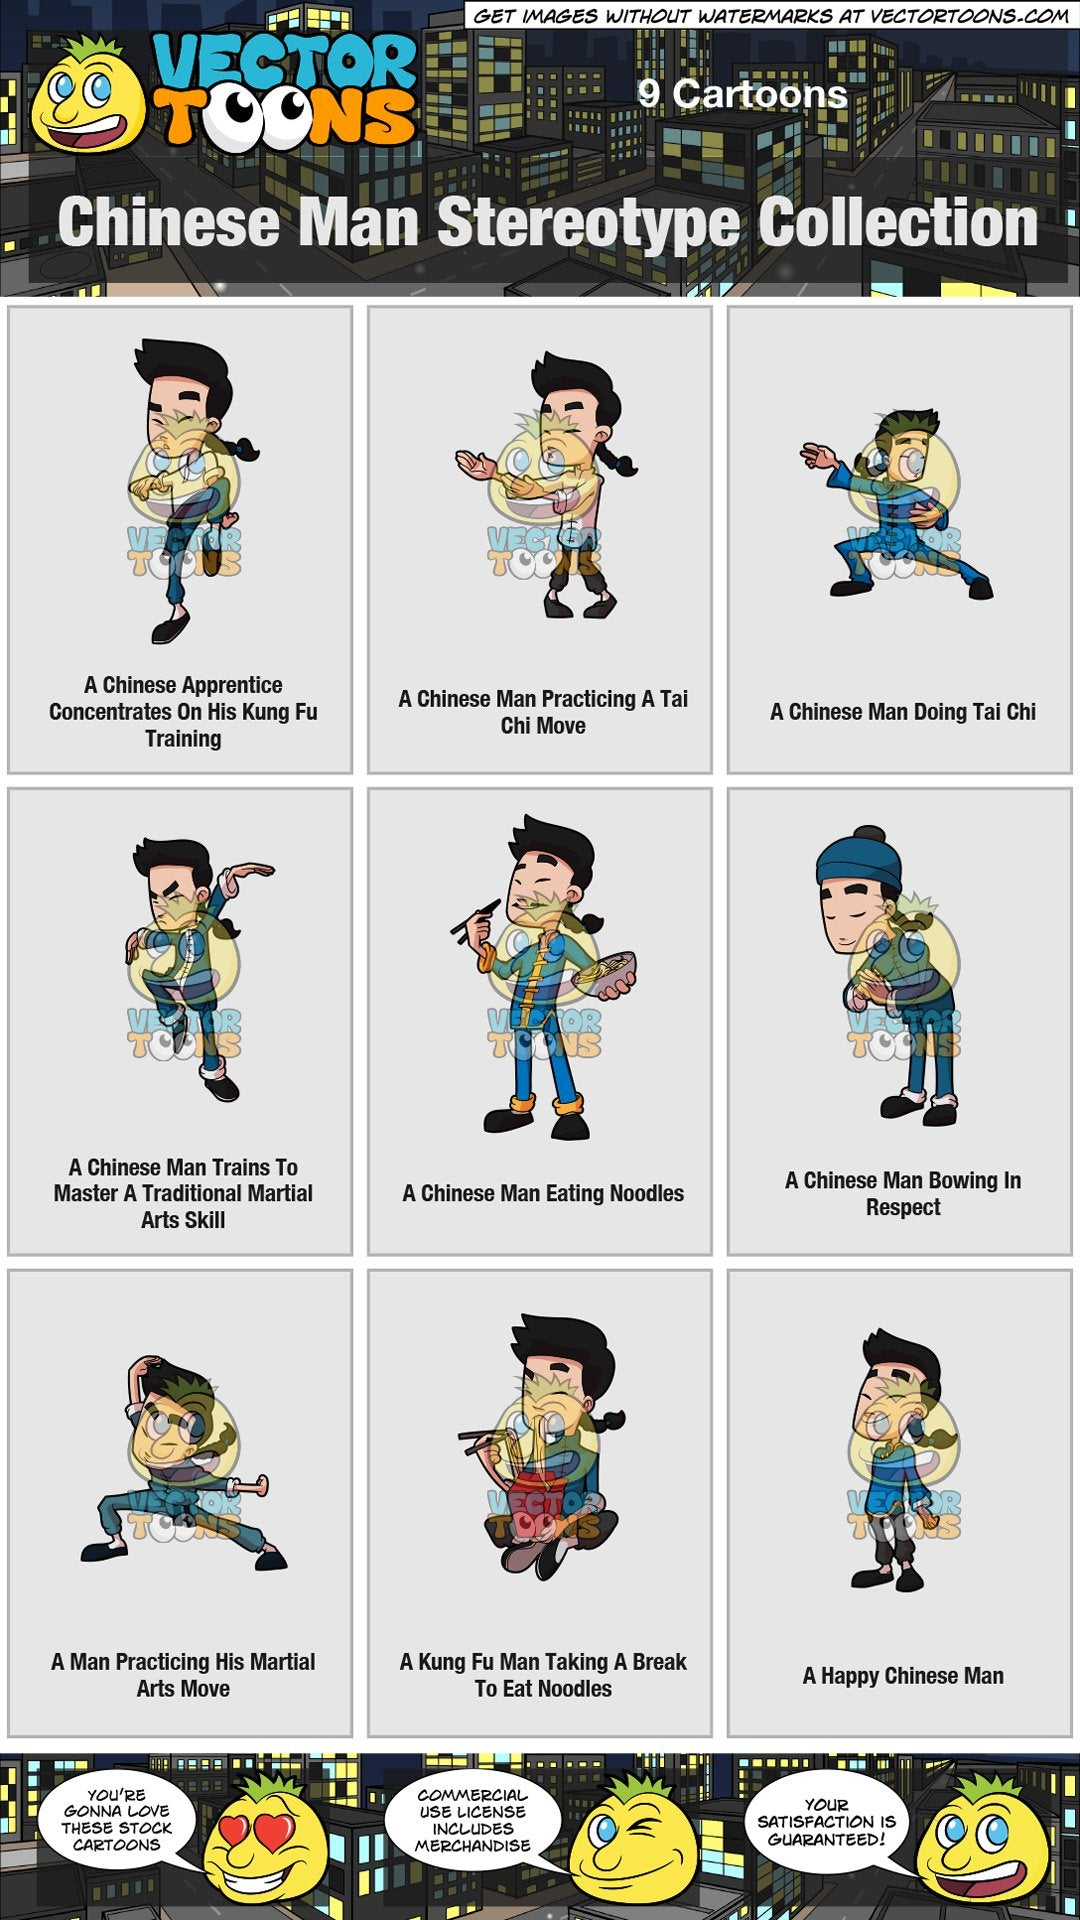 Chinese Man Stereotype Collection